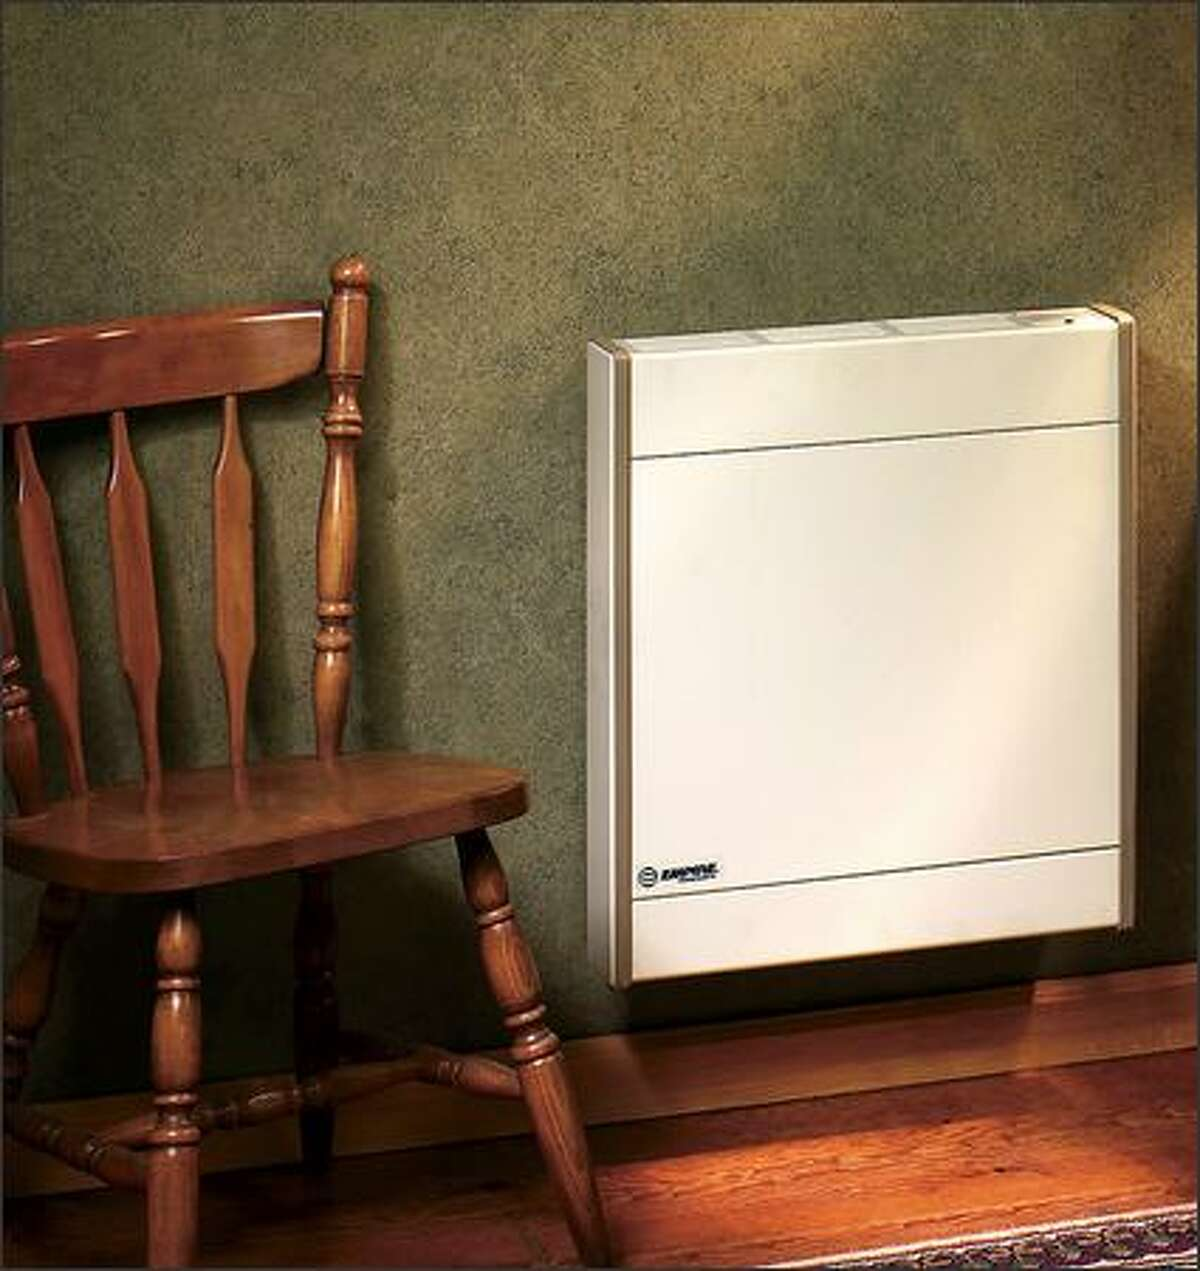 A slim, compact gas heater for areas where floor space is limited.(EMPIRE COMFORT PRODUCTS)